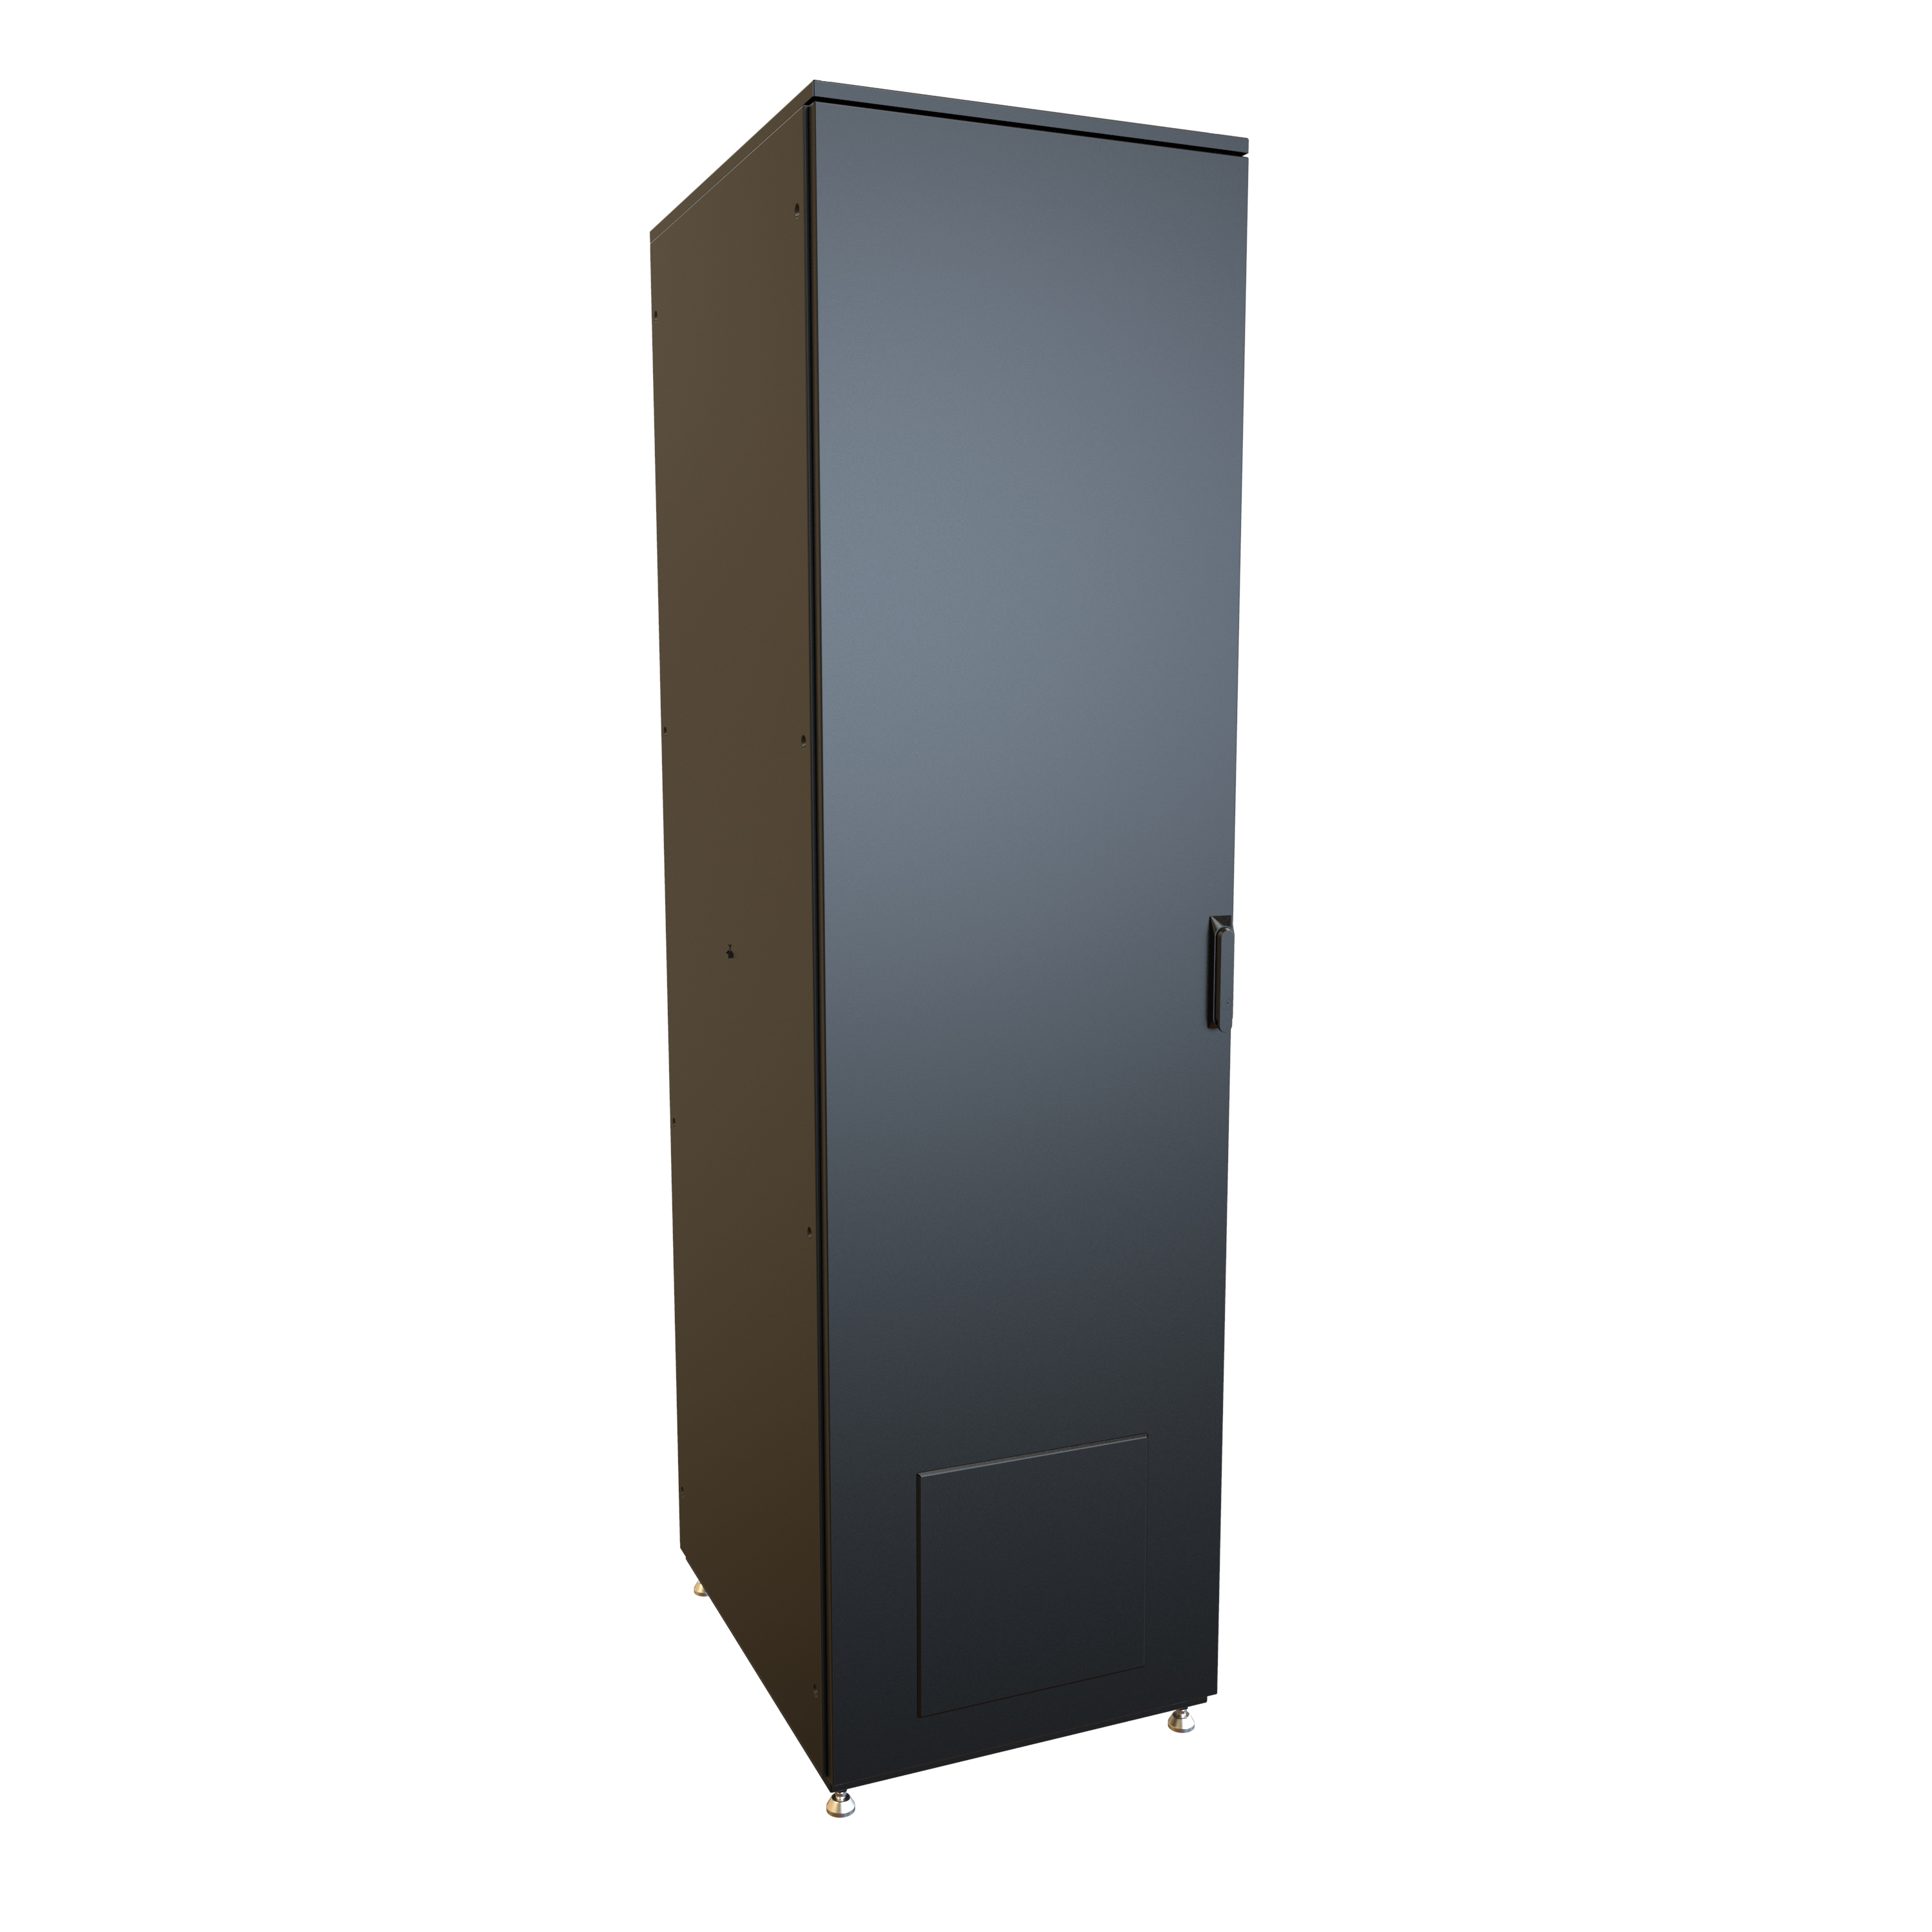 nema rated dust tight server cabinet